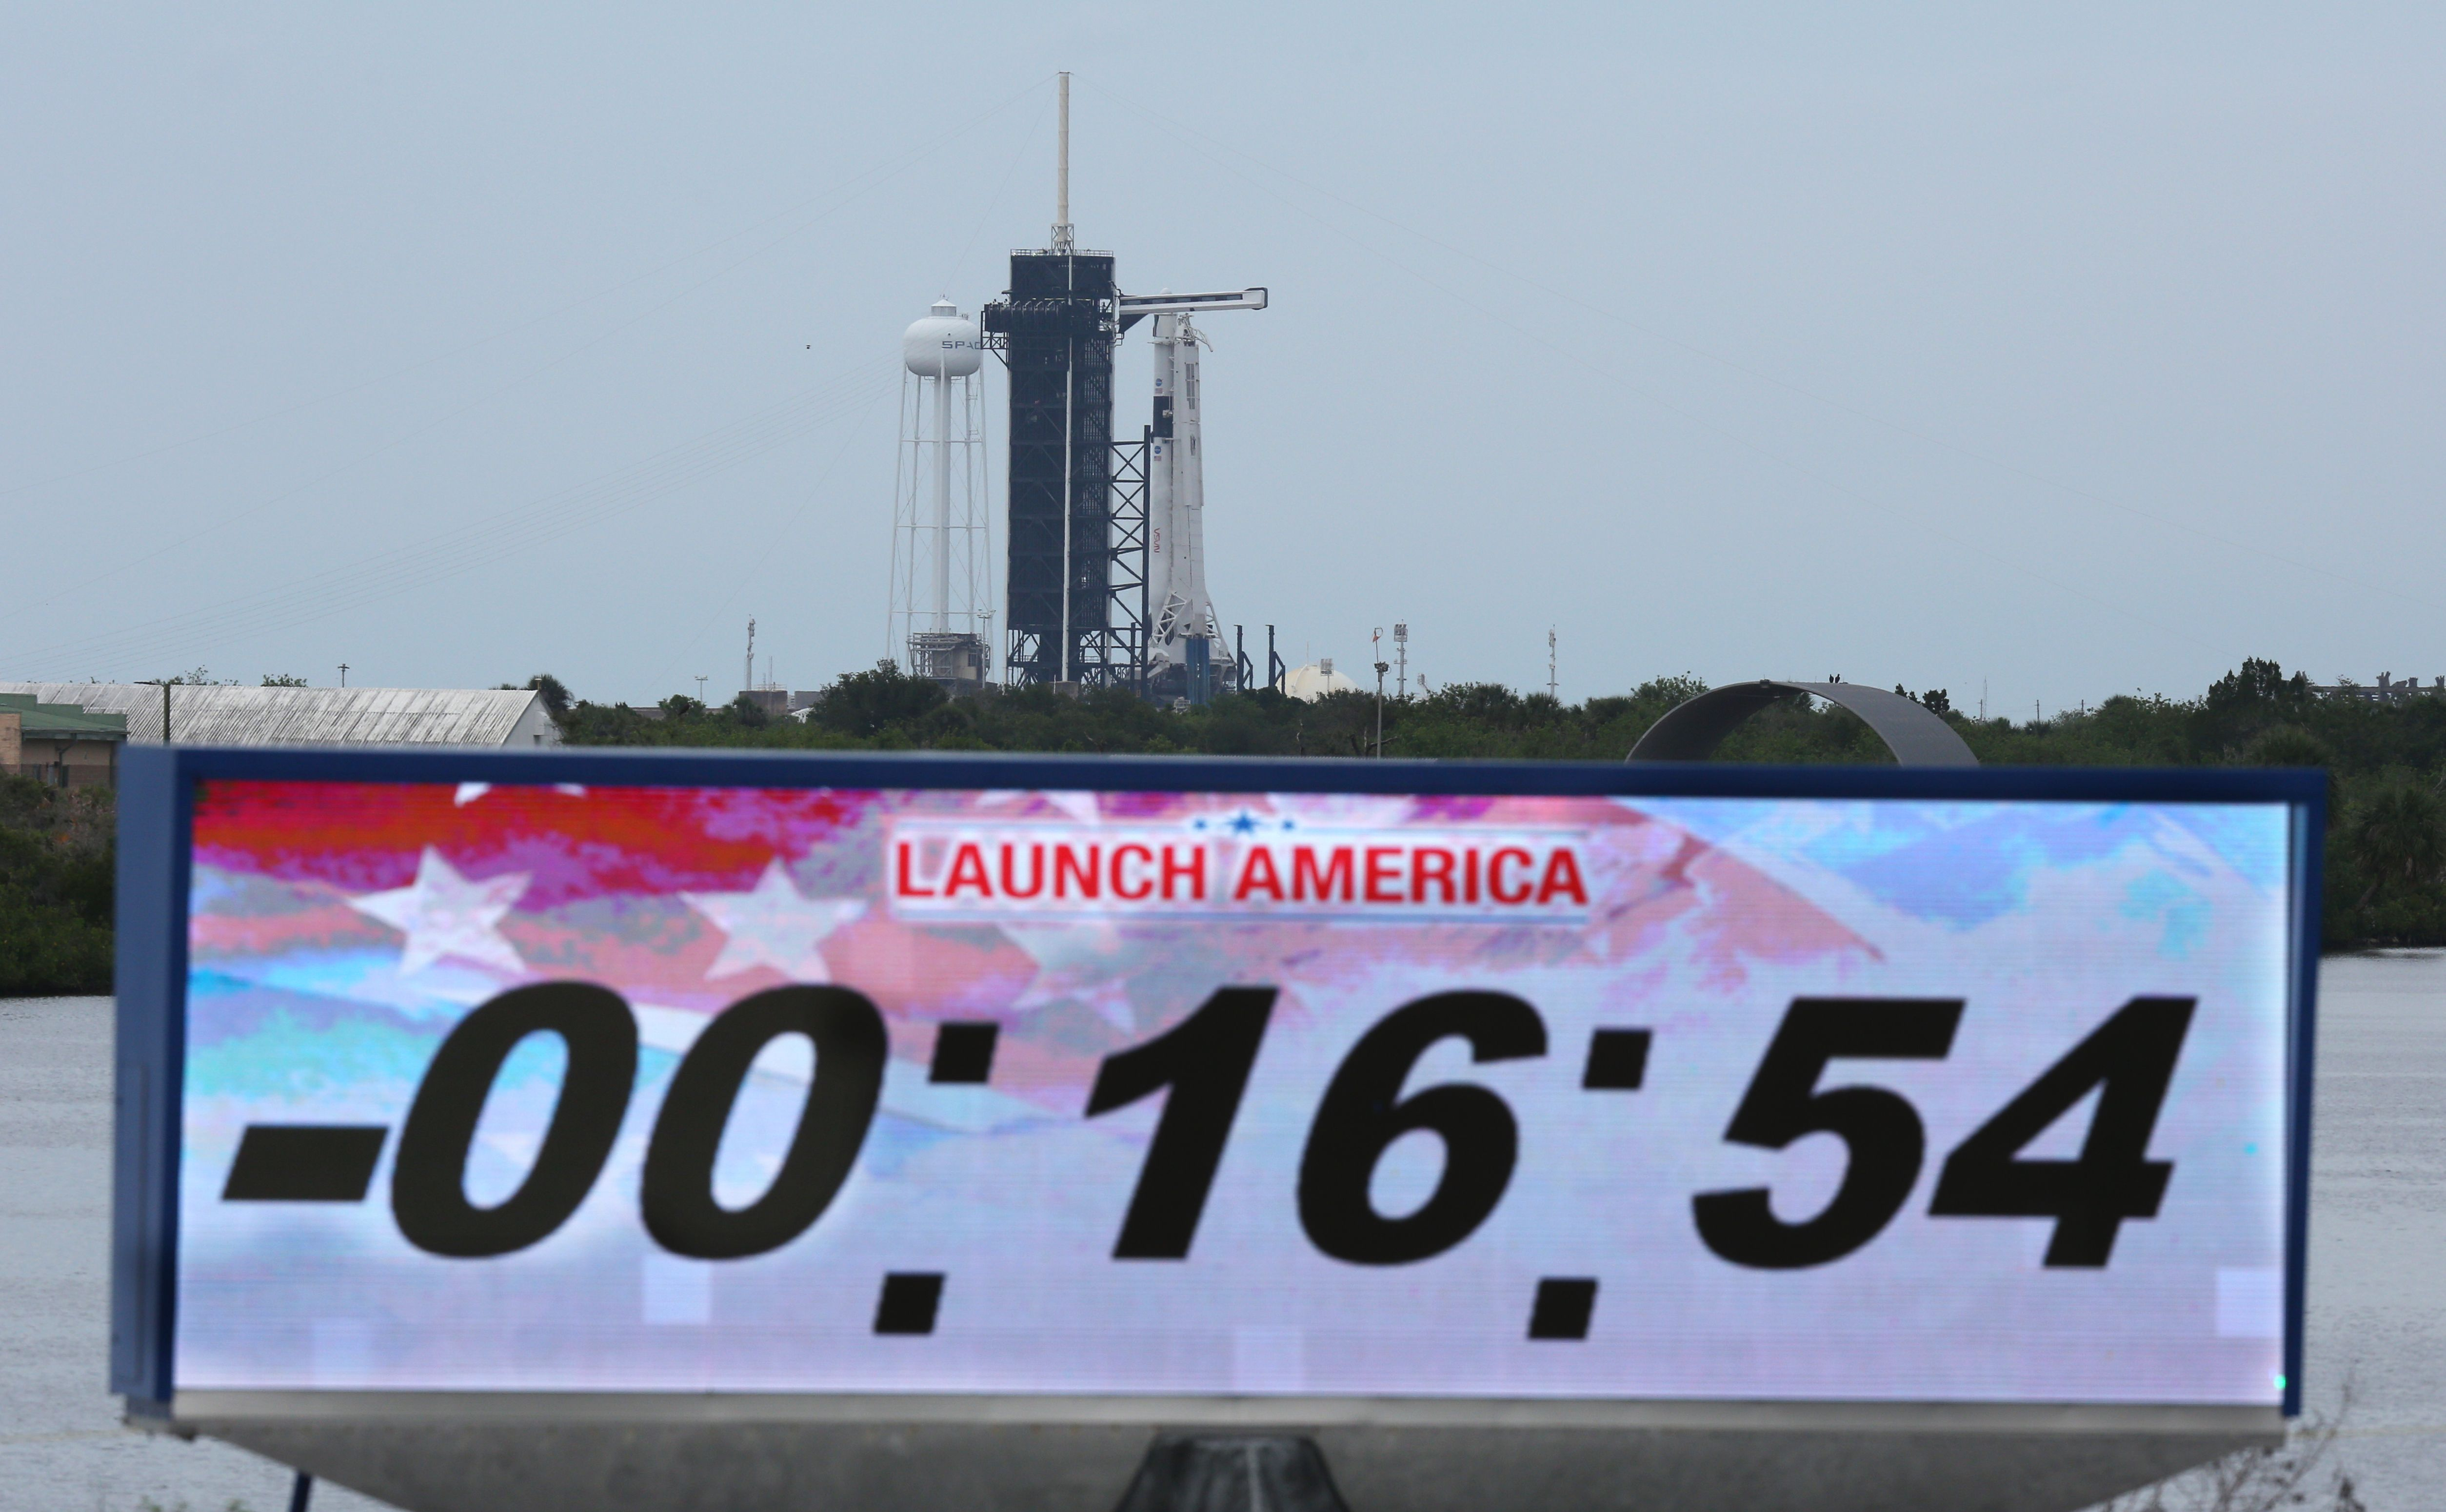 Countdown clock is stopped after the launch of the SpaceX Falcon 9 rocket carrying the Crew Dragon spacecraft was scrubbed at Kennedy Space Center in Florida on May 27, 2020.